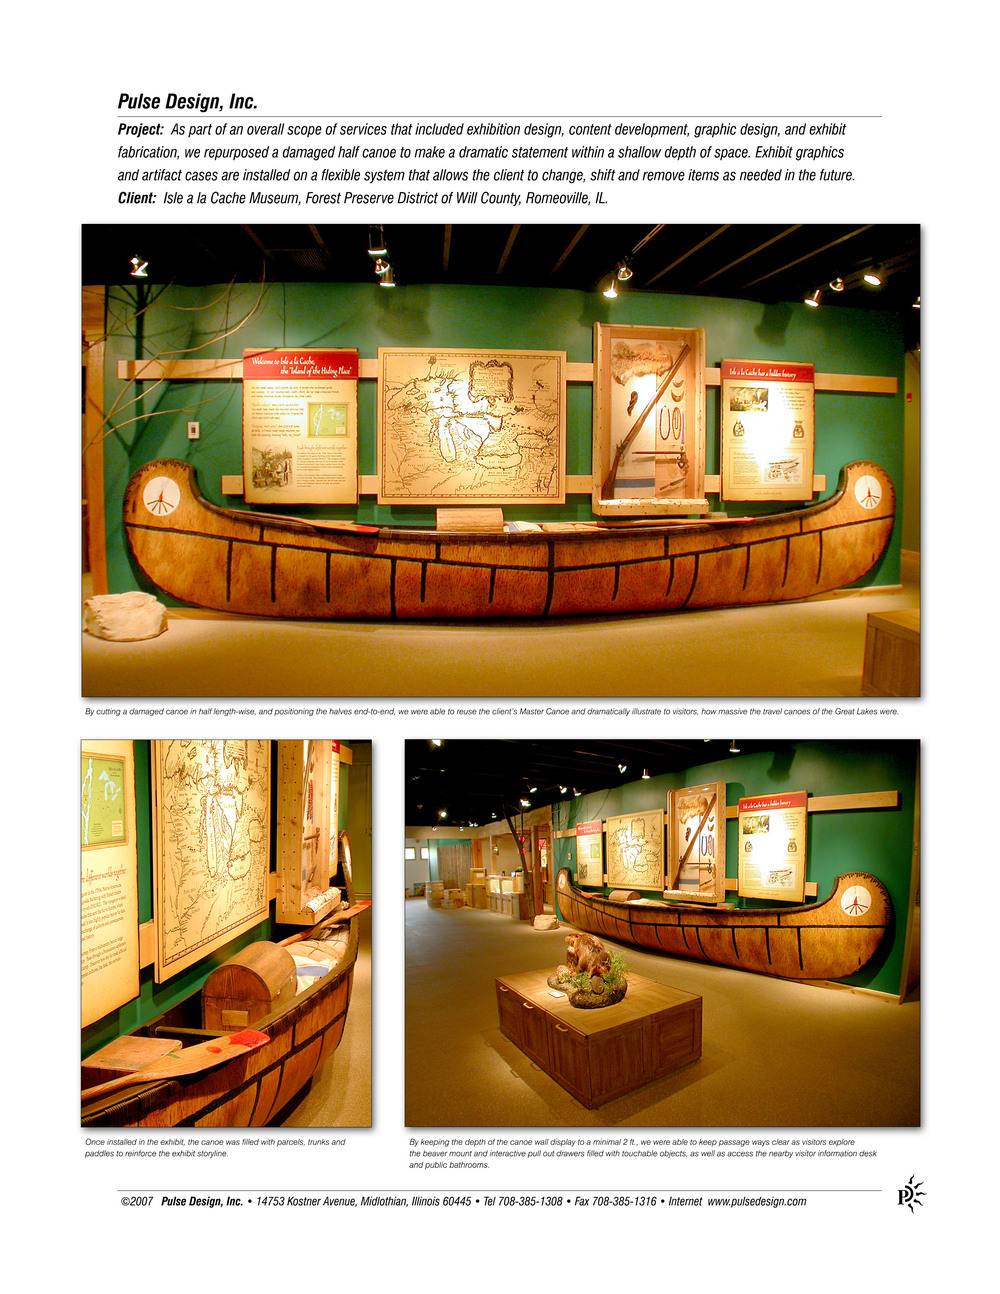 Isla-a-la-Cache-Exhibit-Canoe-Pulse-Design-Inc.jpg